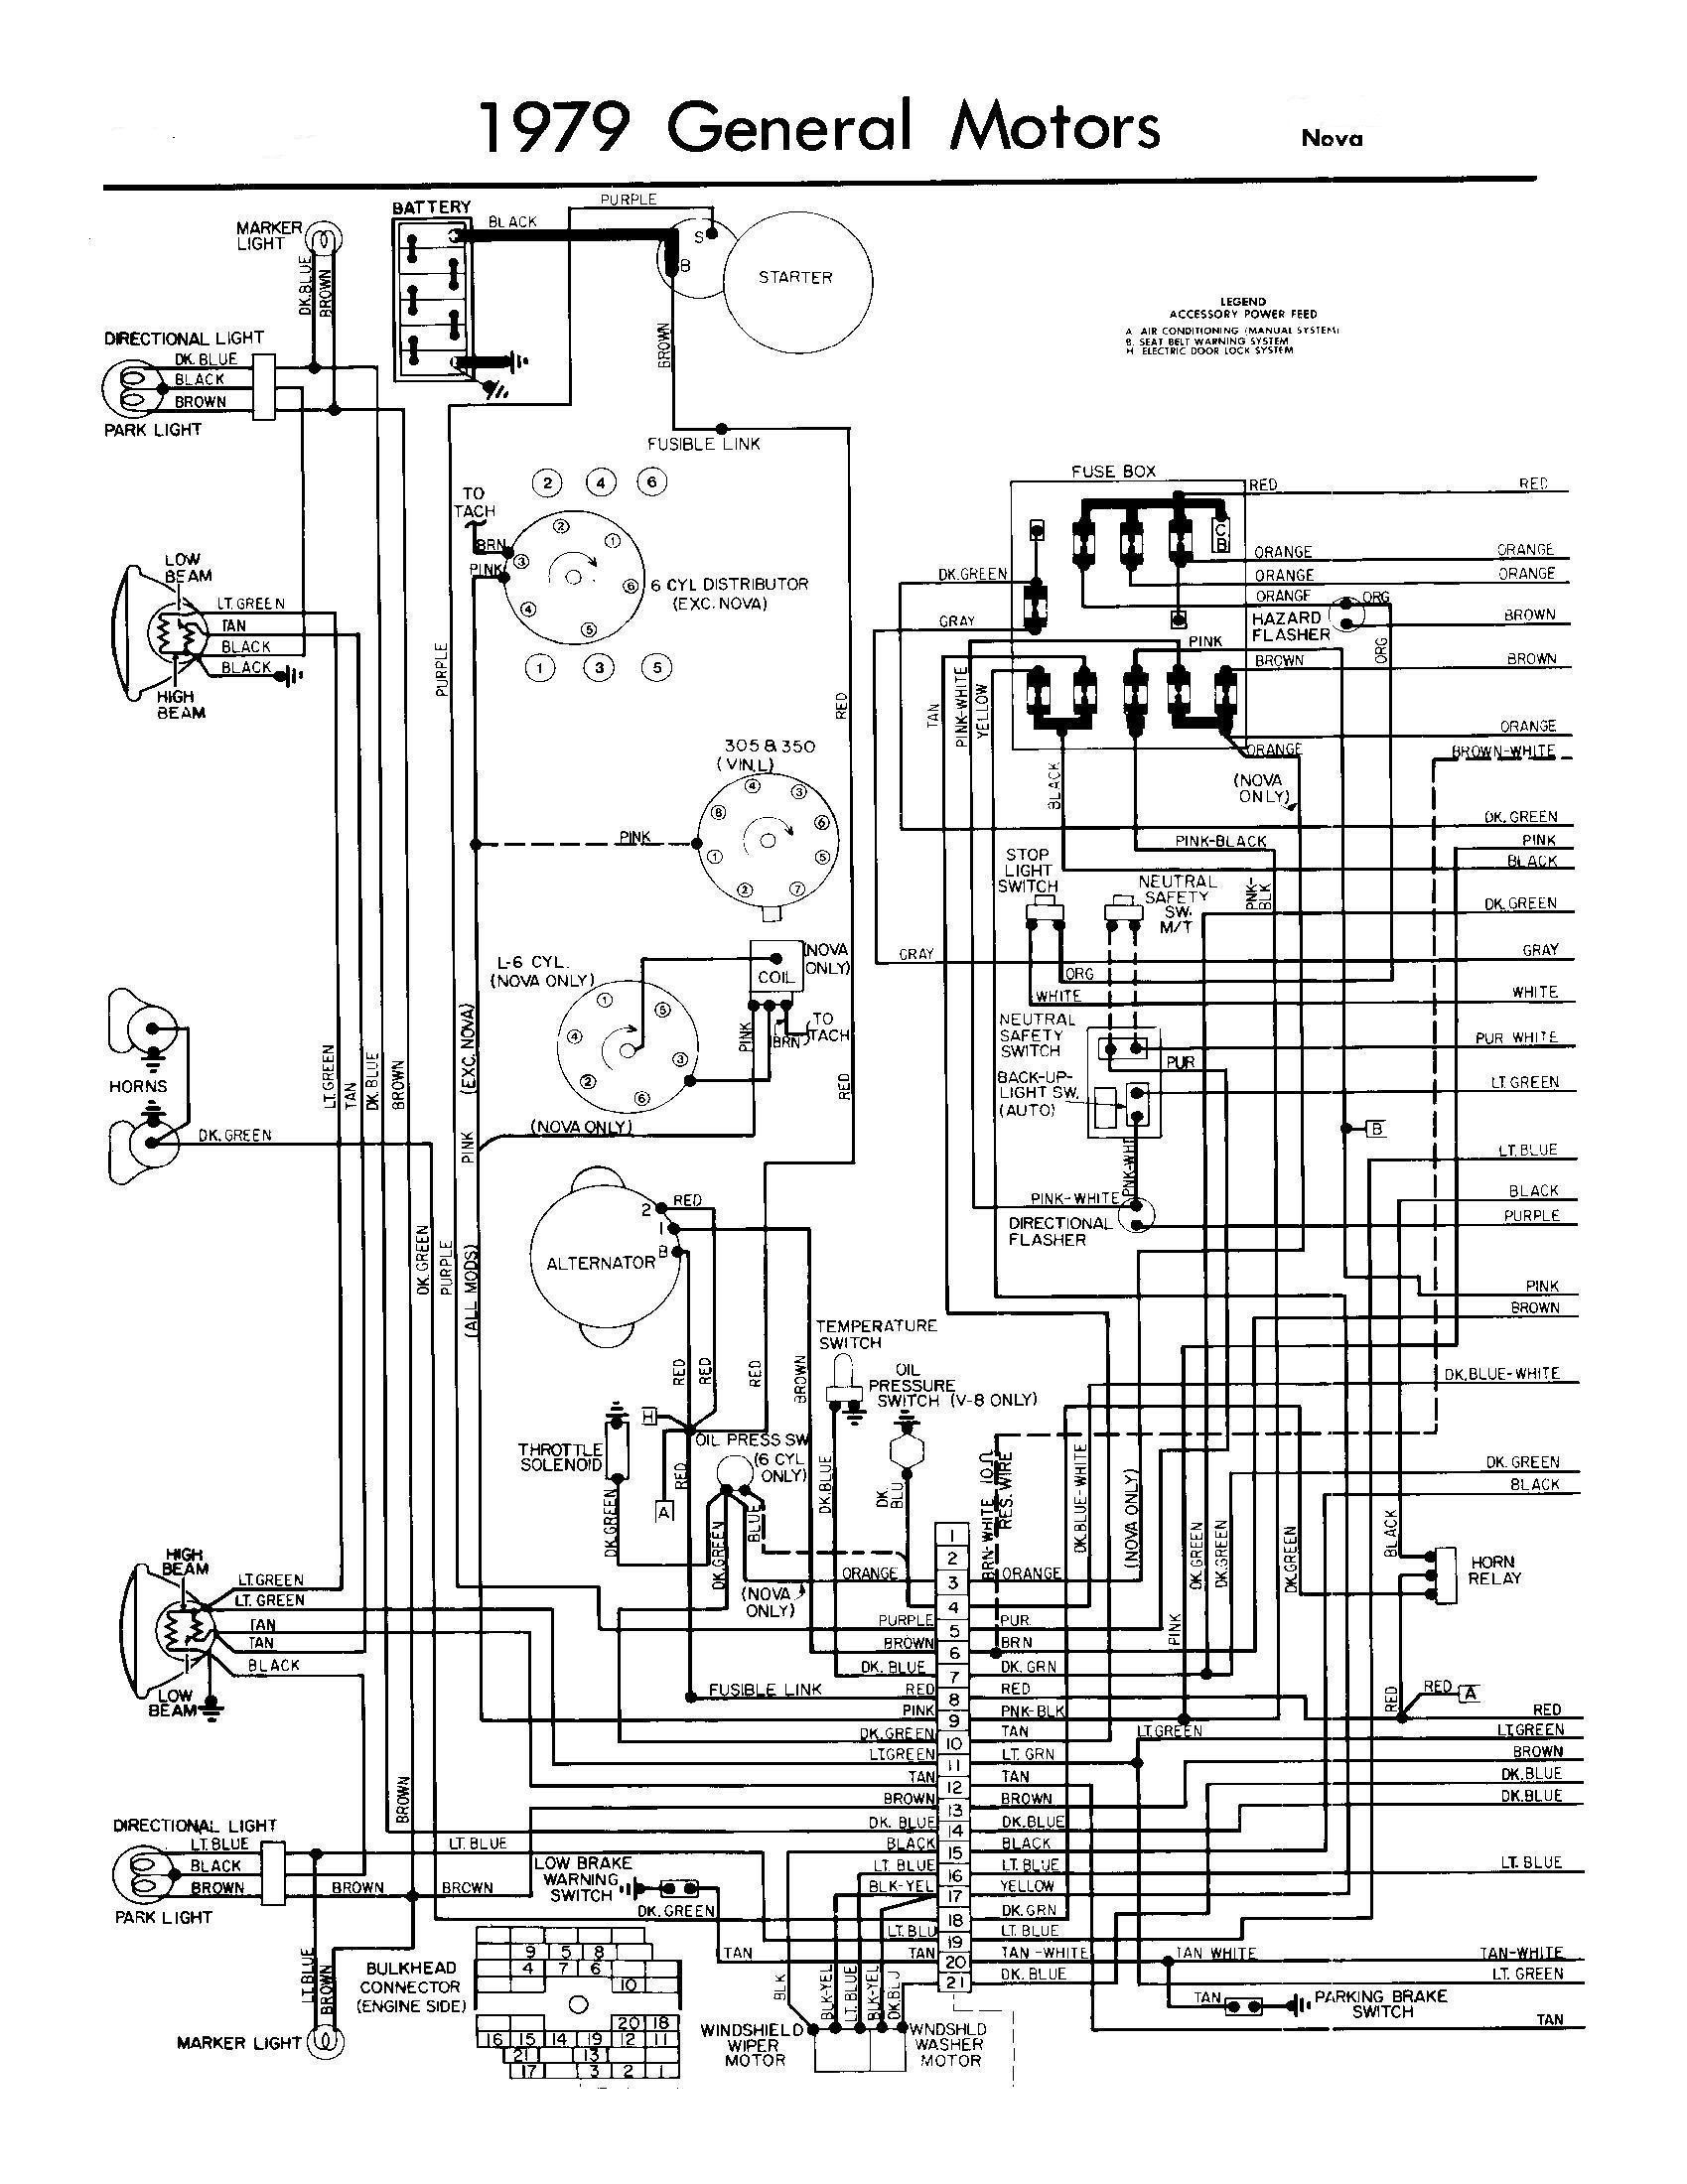 1996 Dodge Grand Caravan Fuse Panel Diagram House Wiring Diagram 2008 Dodge  Caravan Fuse Box Diagram 2005 Dodge Grand Caravan Fuse Box Diagram